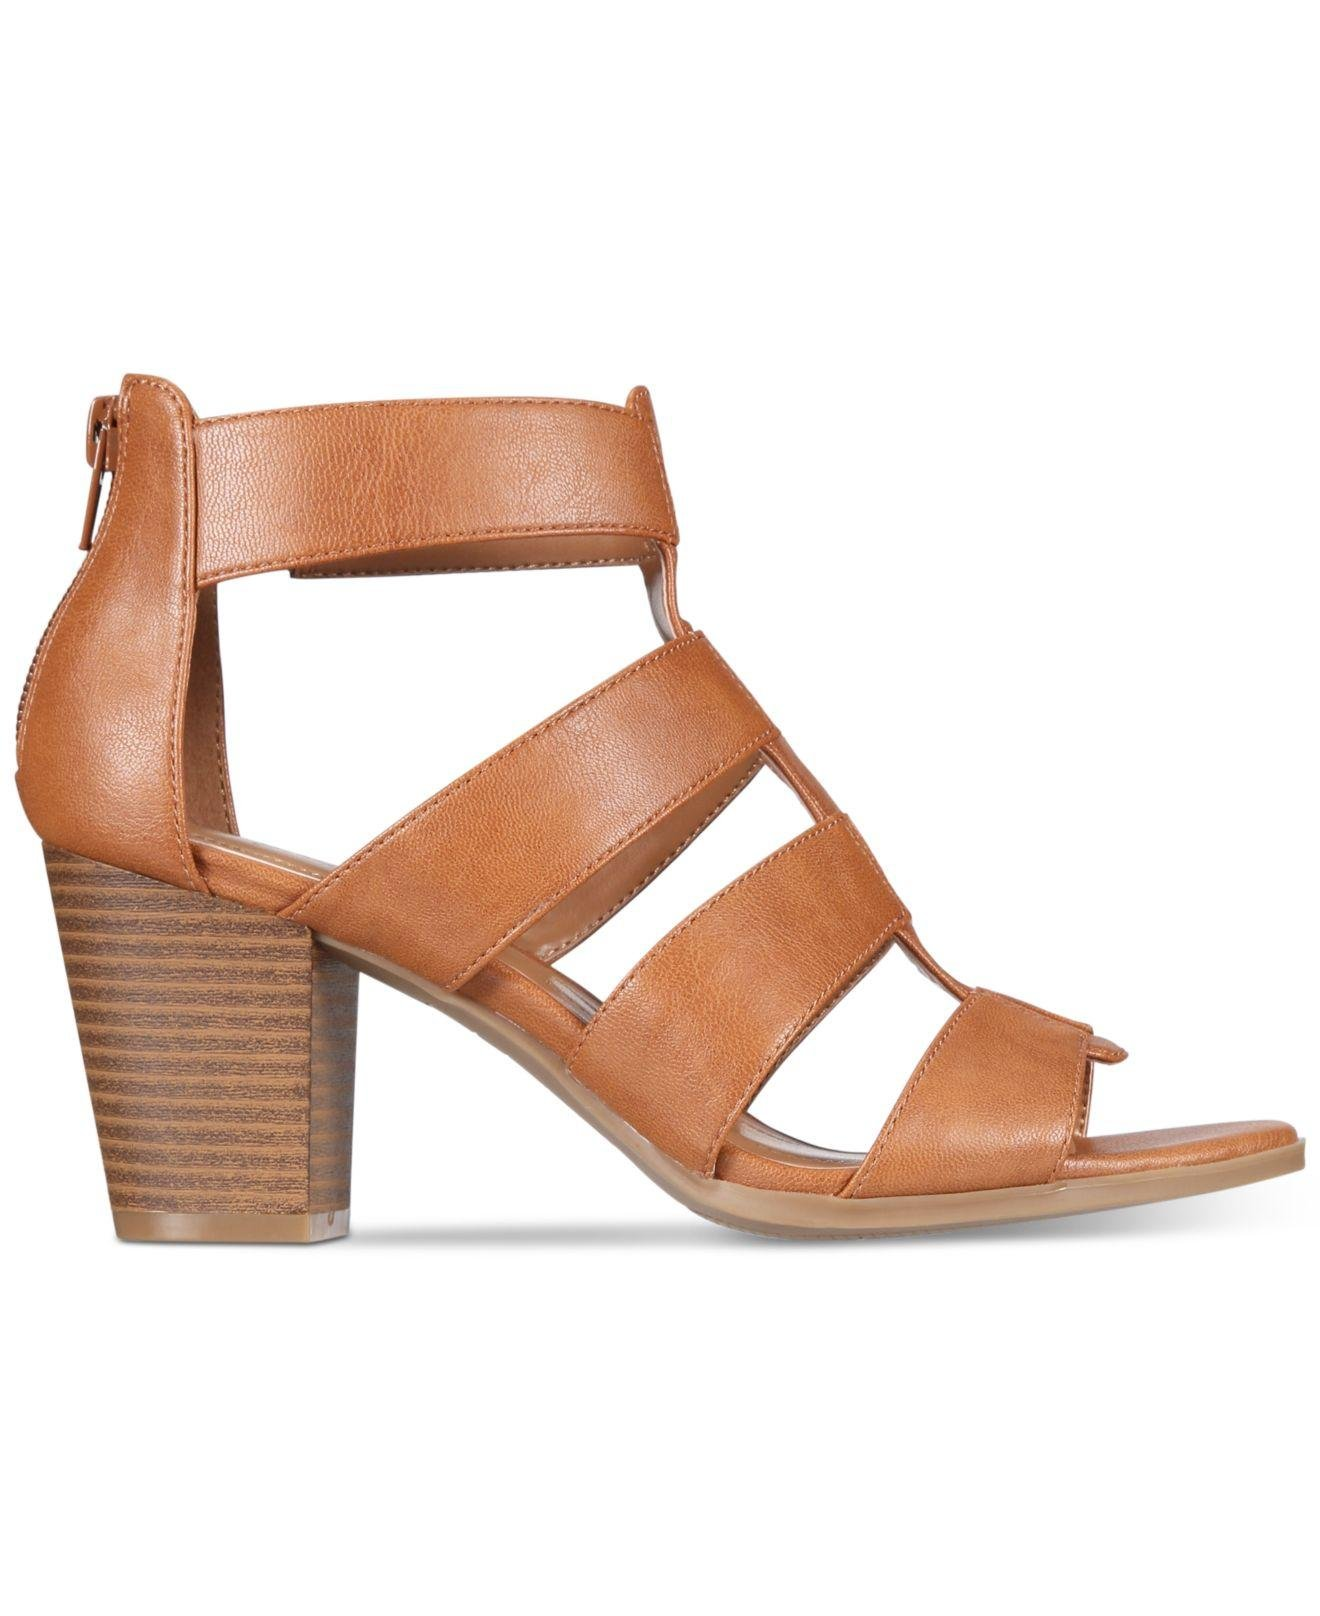 Style & Co. Womens Janinaap Open Toe Casual Strappy Sandals, Coffee, Size 7.0